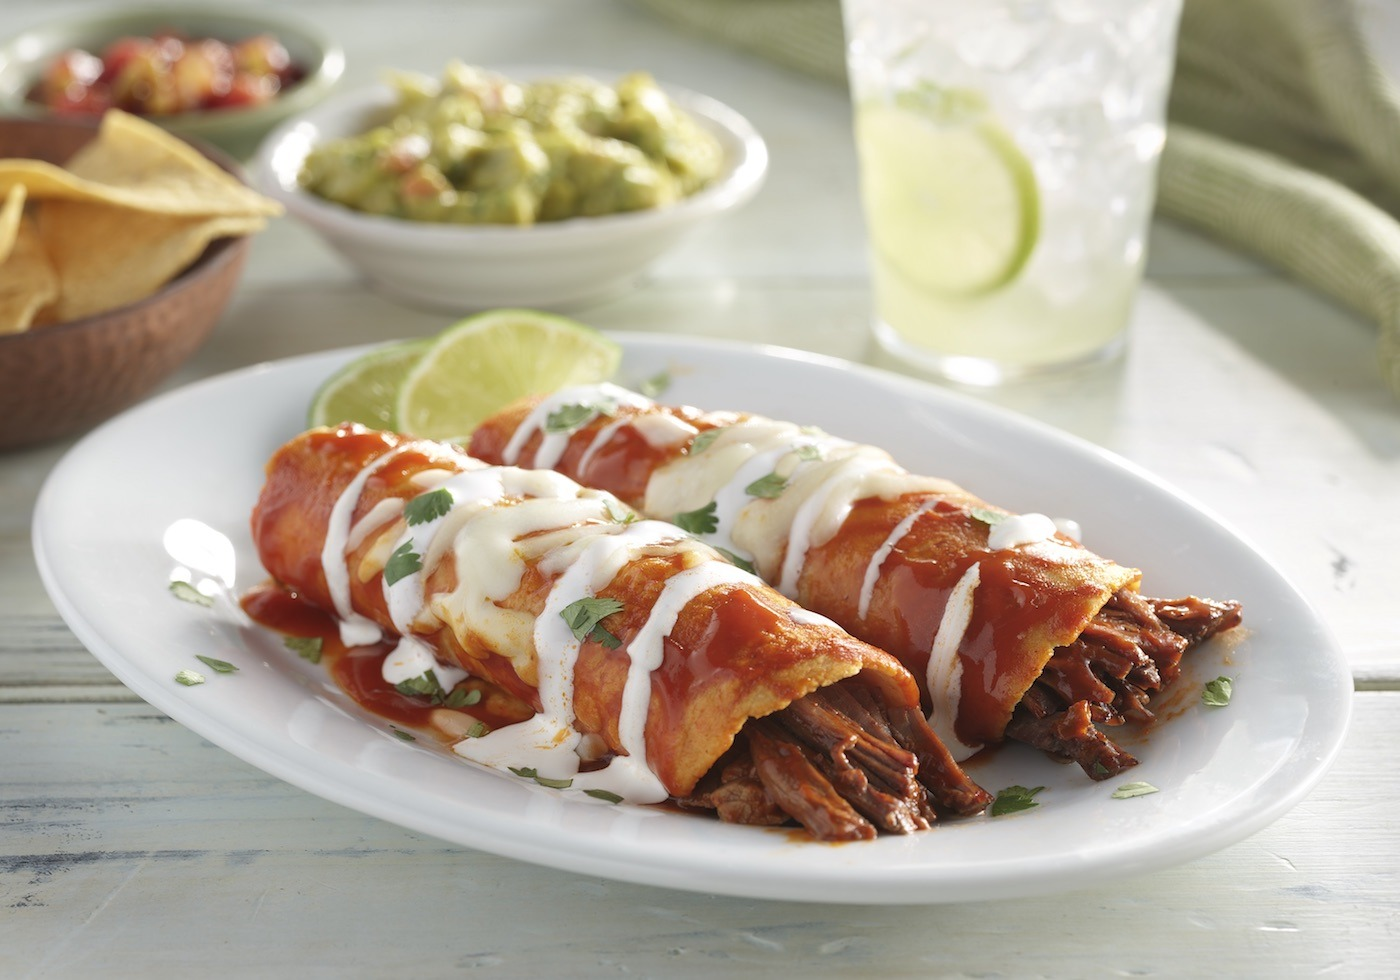 Let Authentic Enchilada Sauce Inspire Your Menu